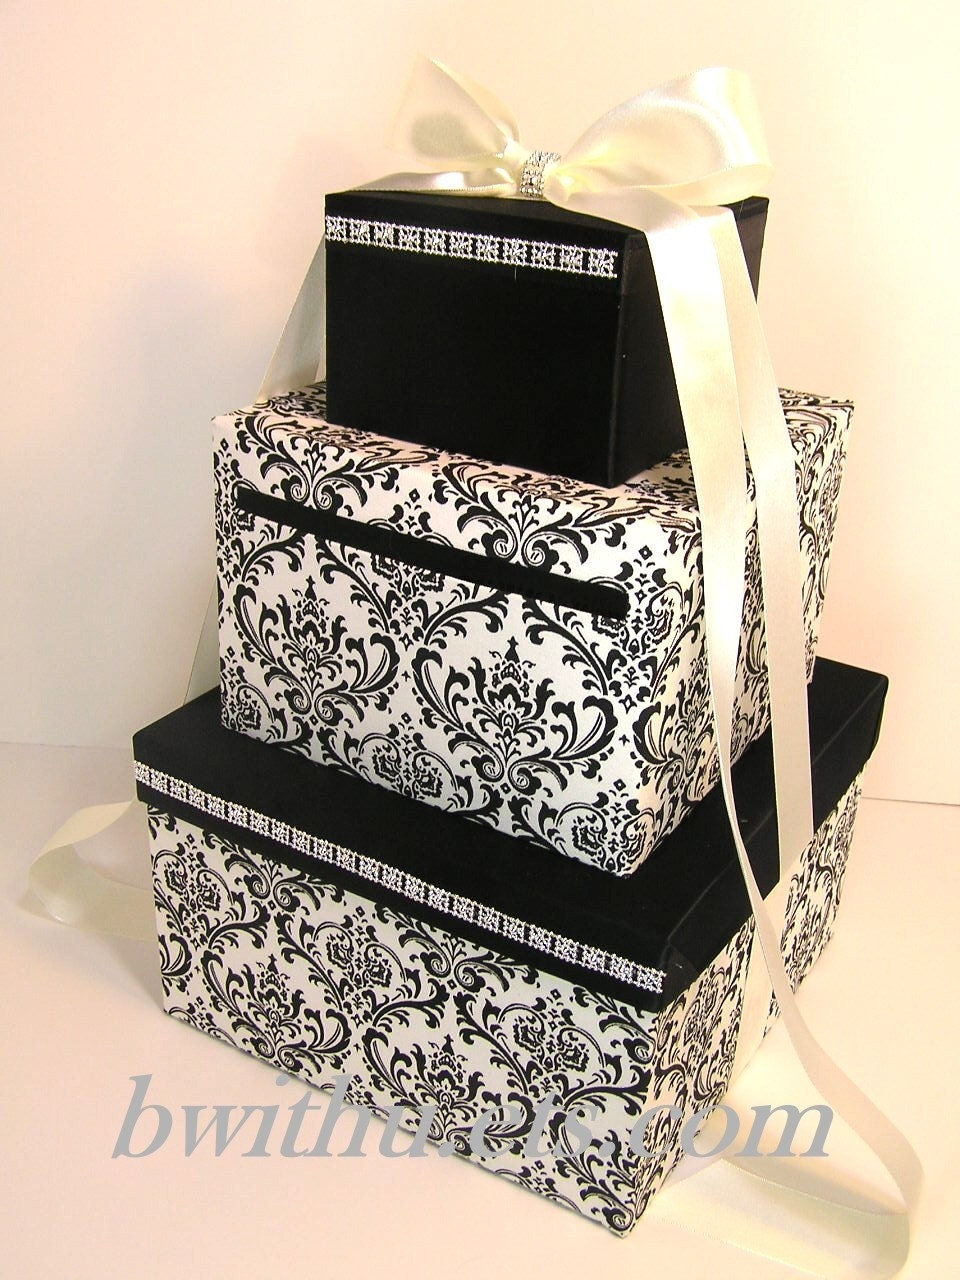 Wedding Gift Box Etsy : Like this item?